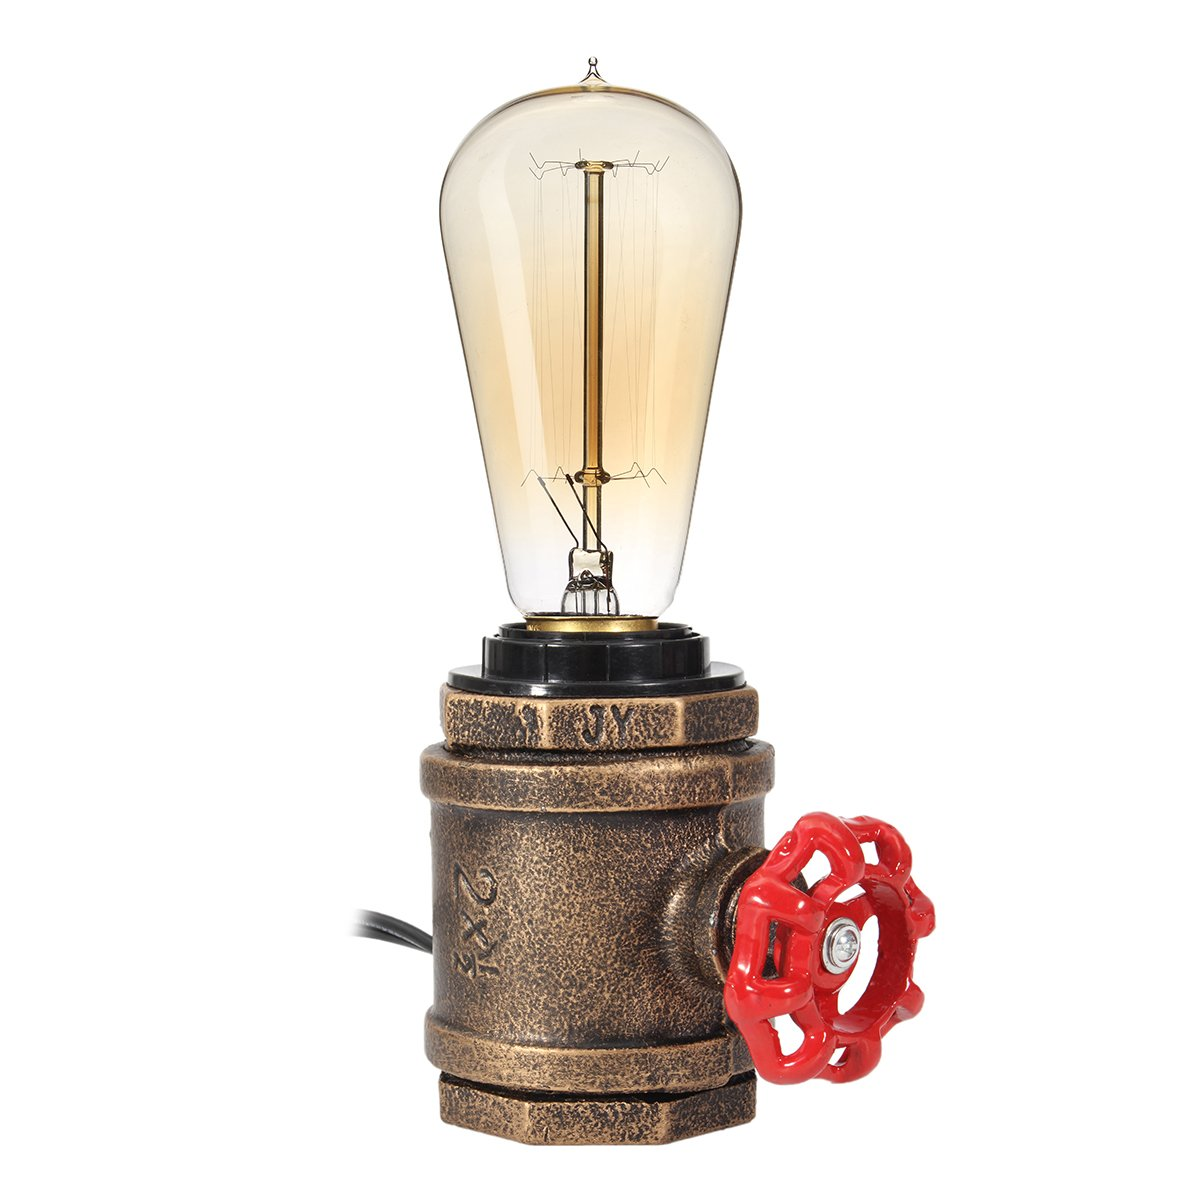 Elfeland Vintage Table Lamp With Ul Listed Button Switch